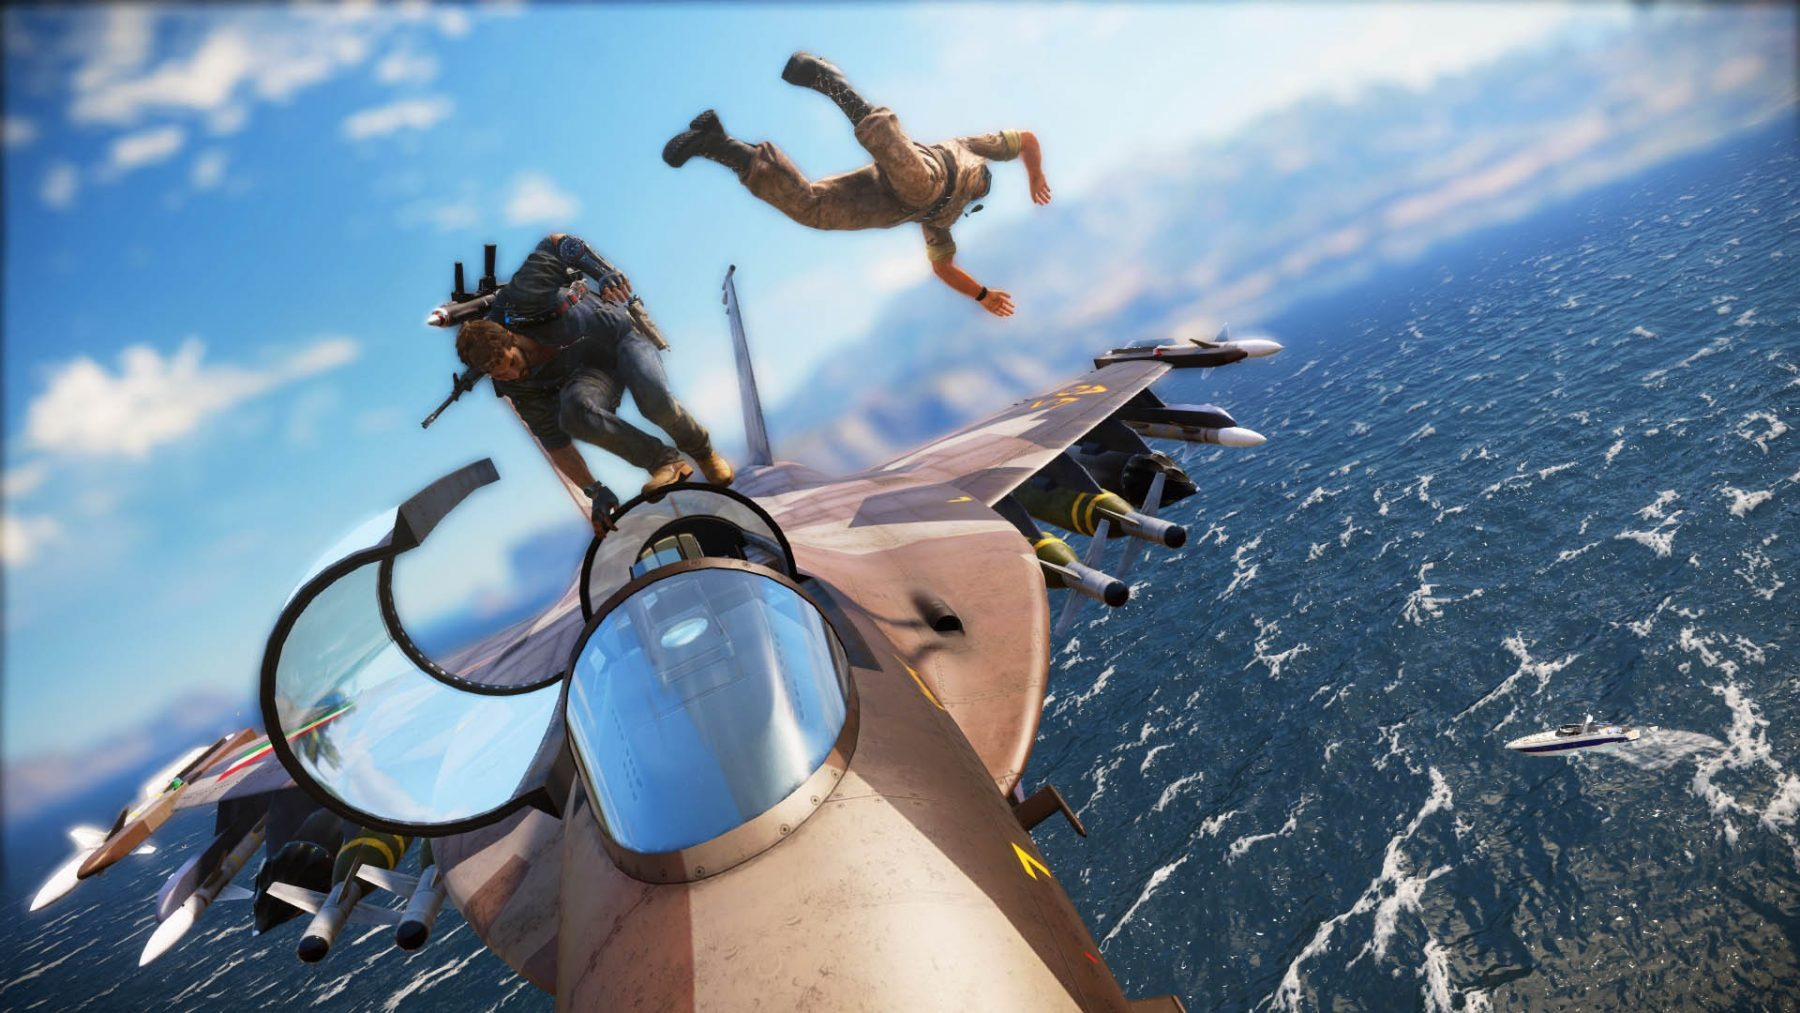 Download the hacked version of Just Cause 3 for PS4 – DUPLEX